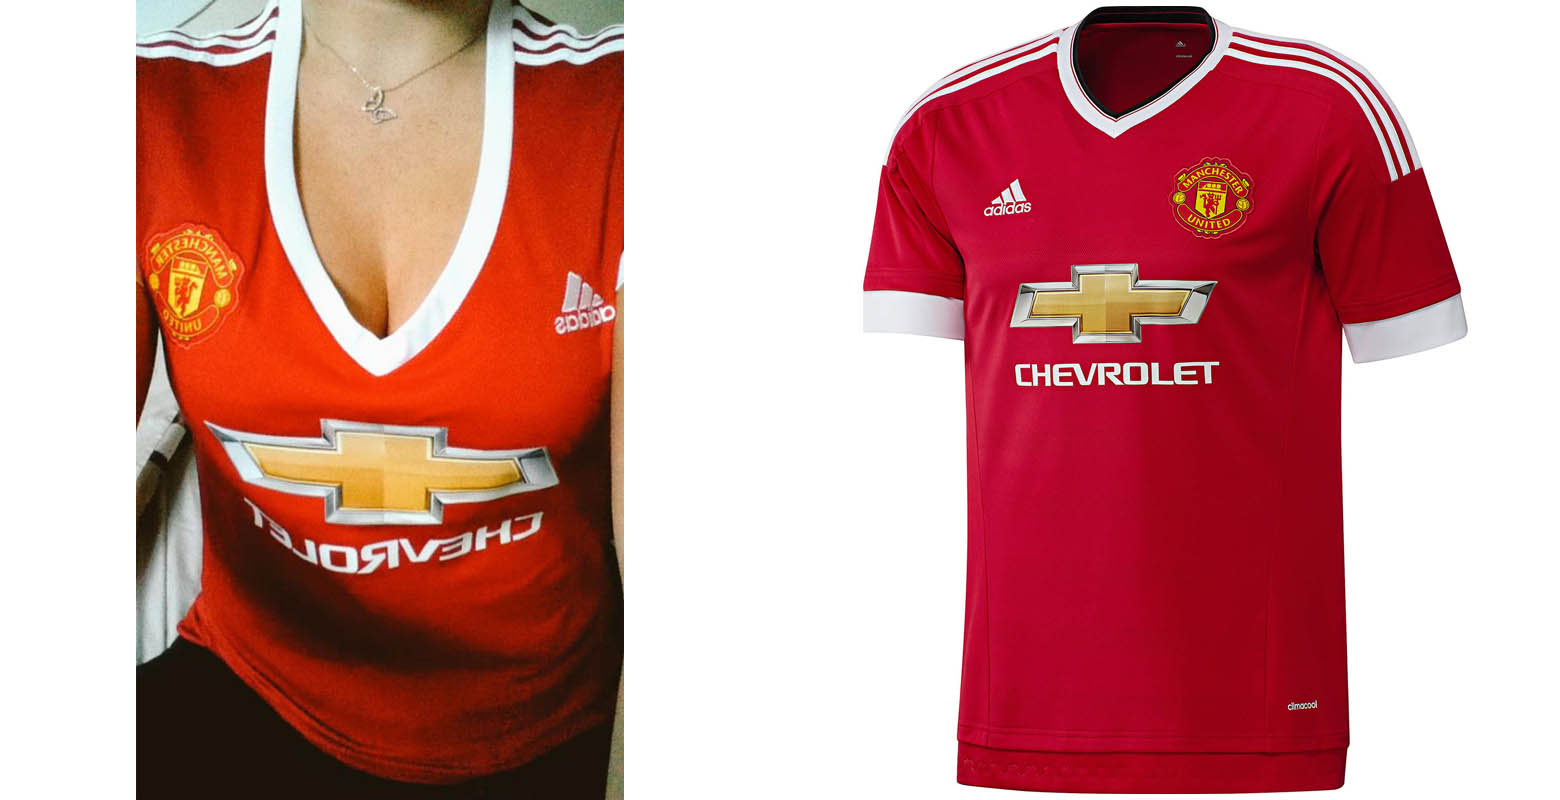 New Adidas Manchester United 2015-16 Kits Officially Released